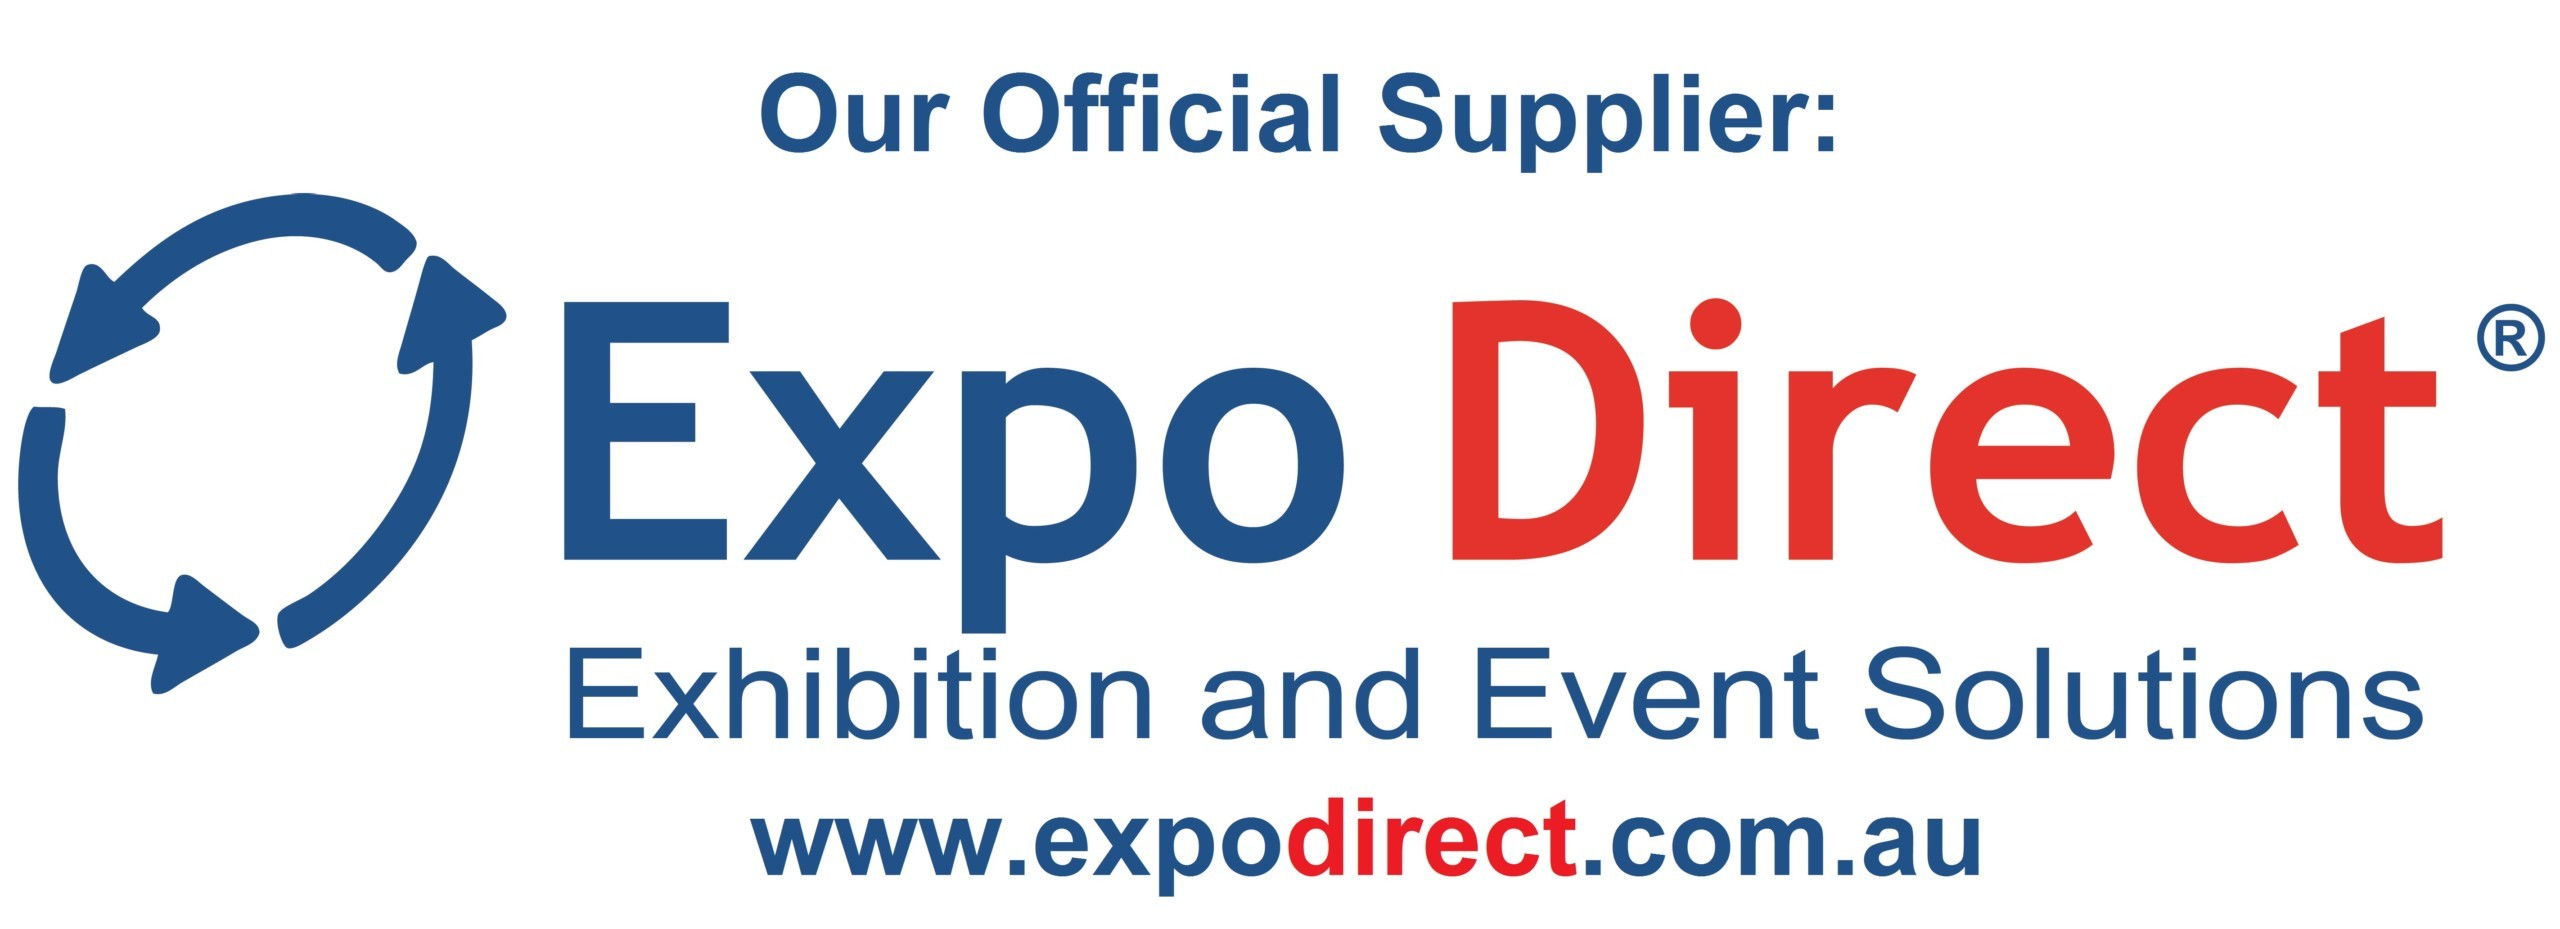 Expo-Direct-Official-Supplier-logo.jpg#asset:9539